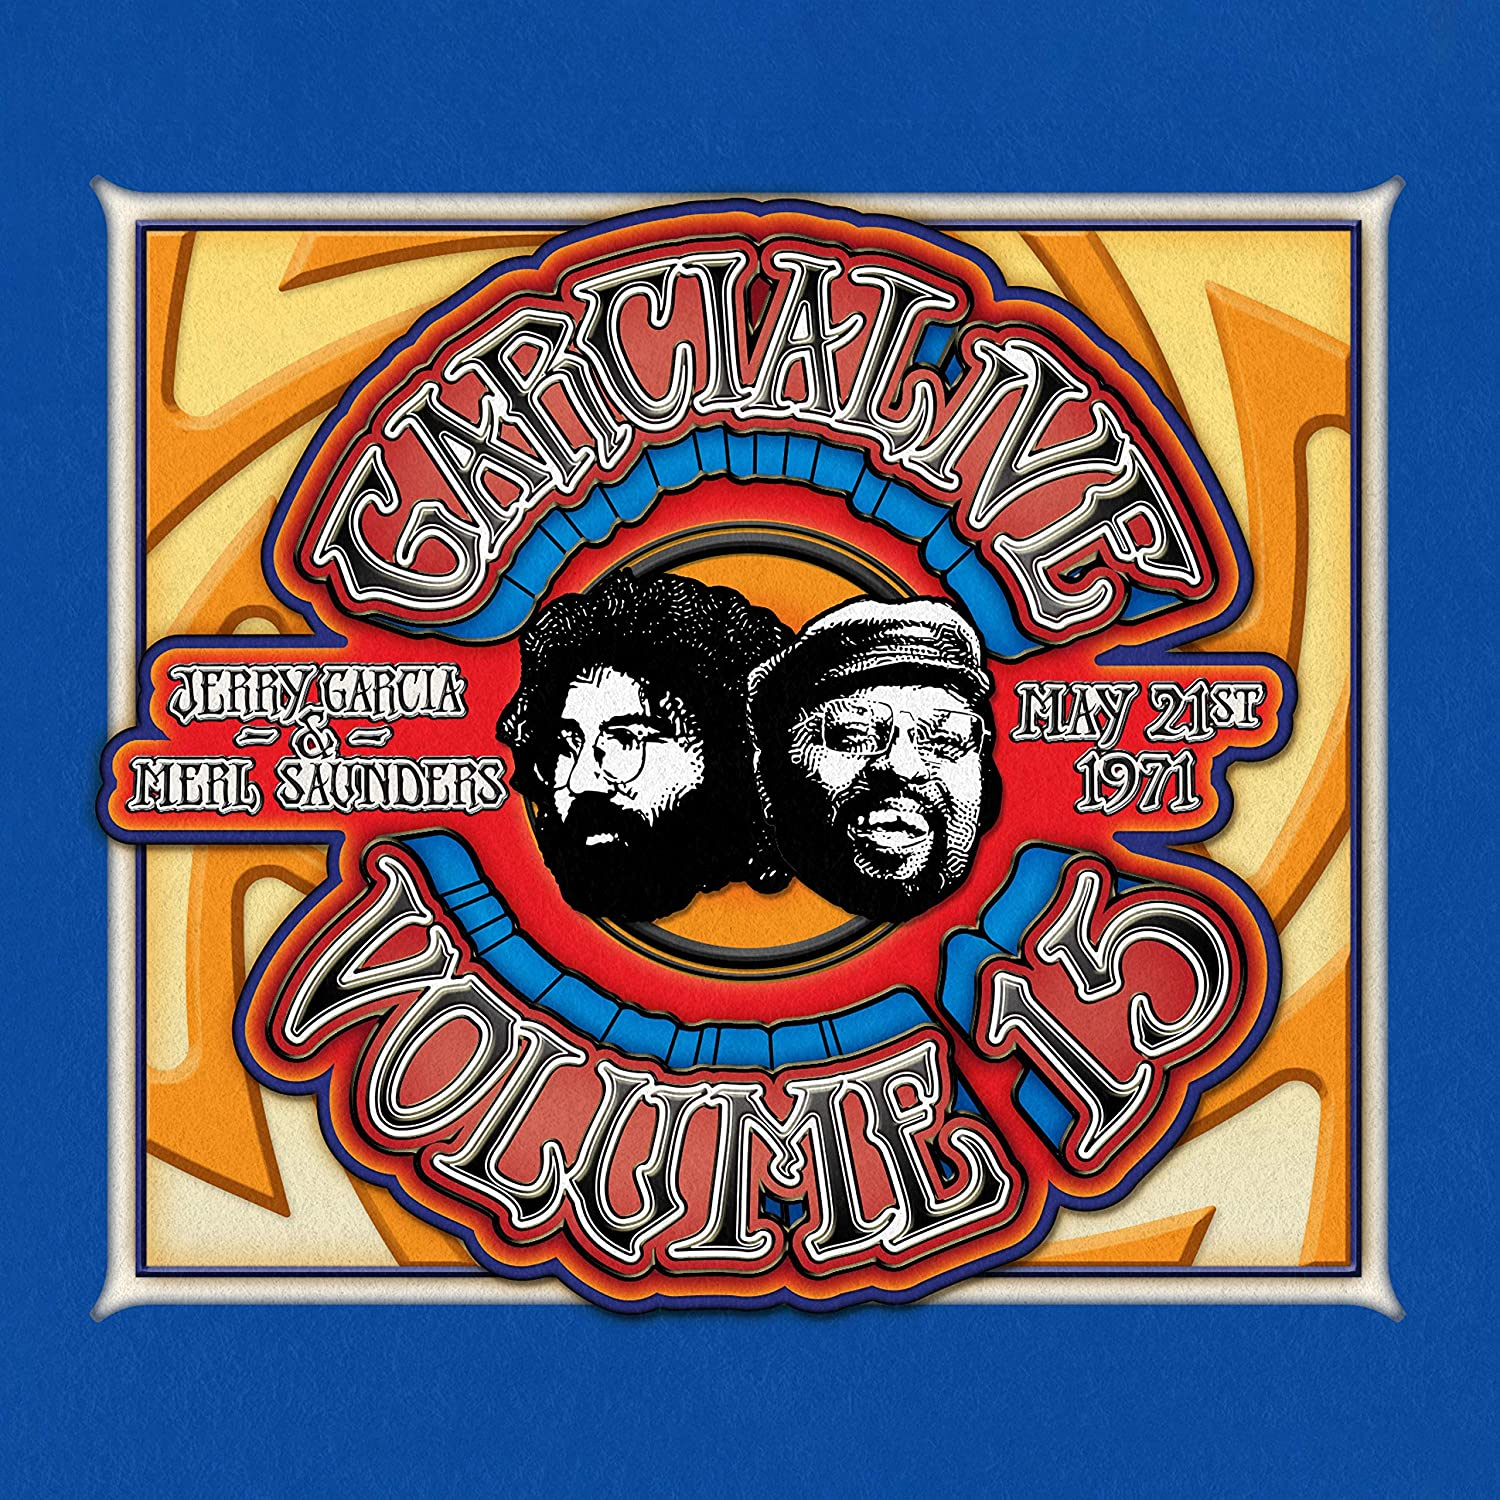 GarciaLive Vol. 15: Jerry Garcia & Merl Saunders, May 21st, 1971